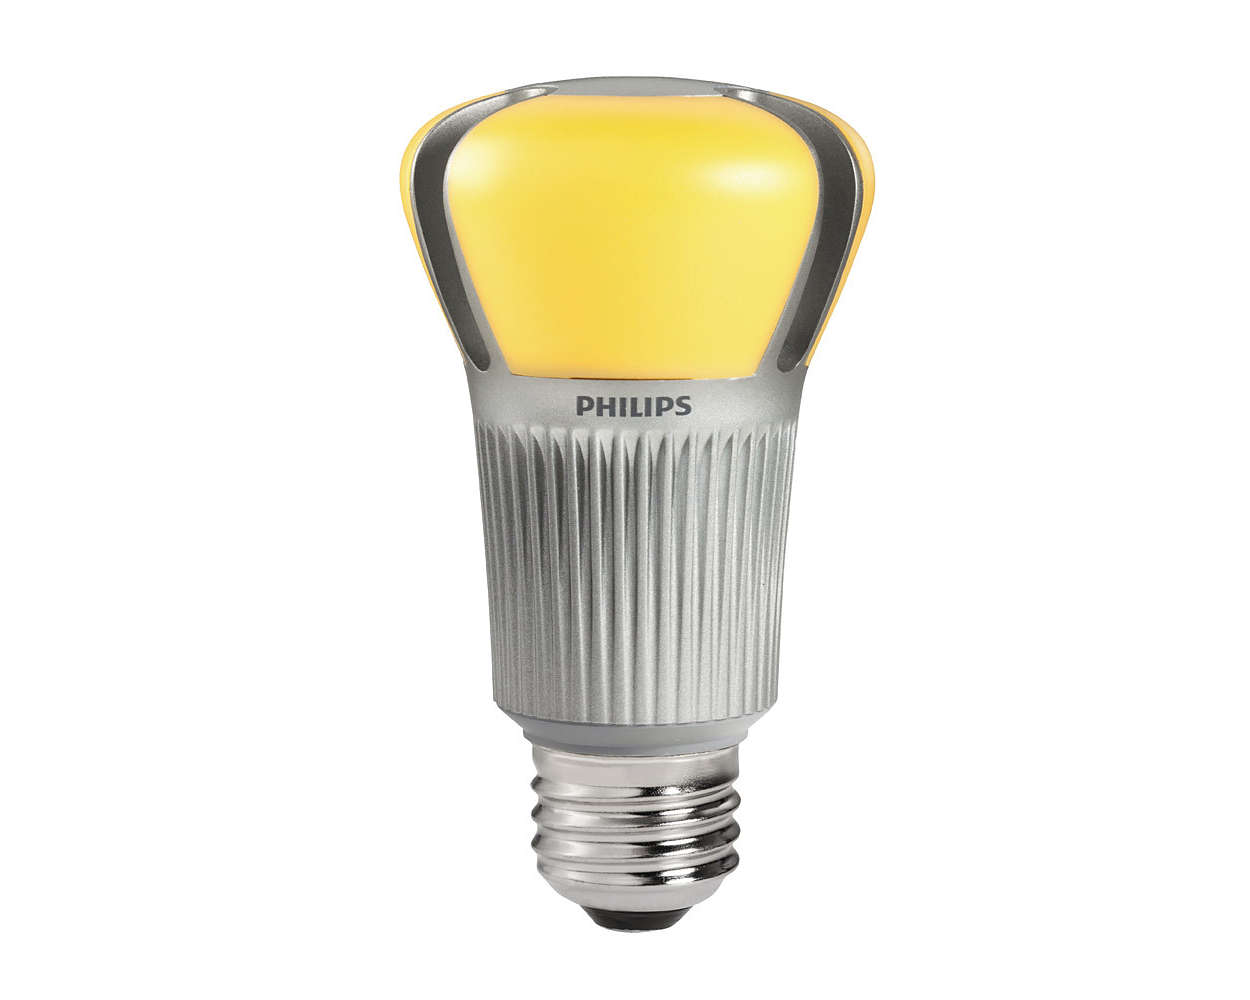 Ambientled Dimmable A19 Bulb Philips Lighting: light bulb lamps